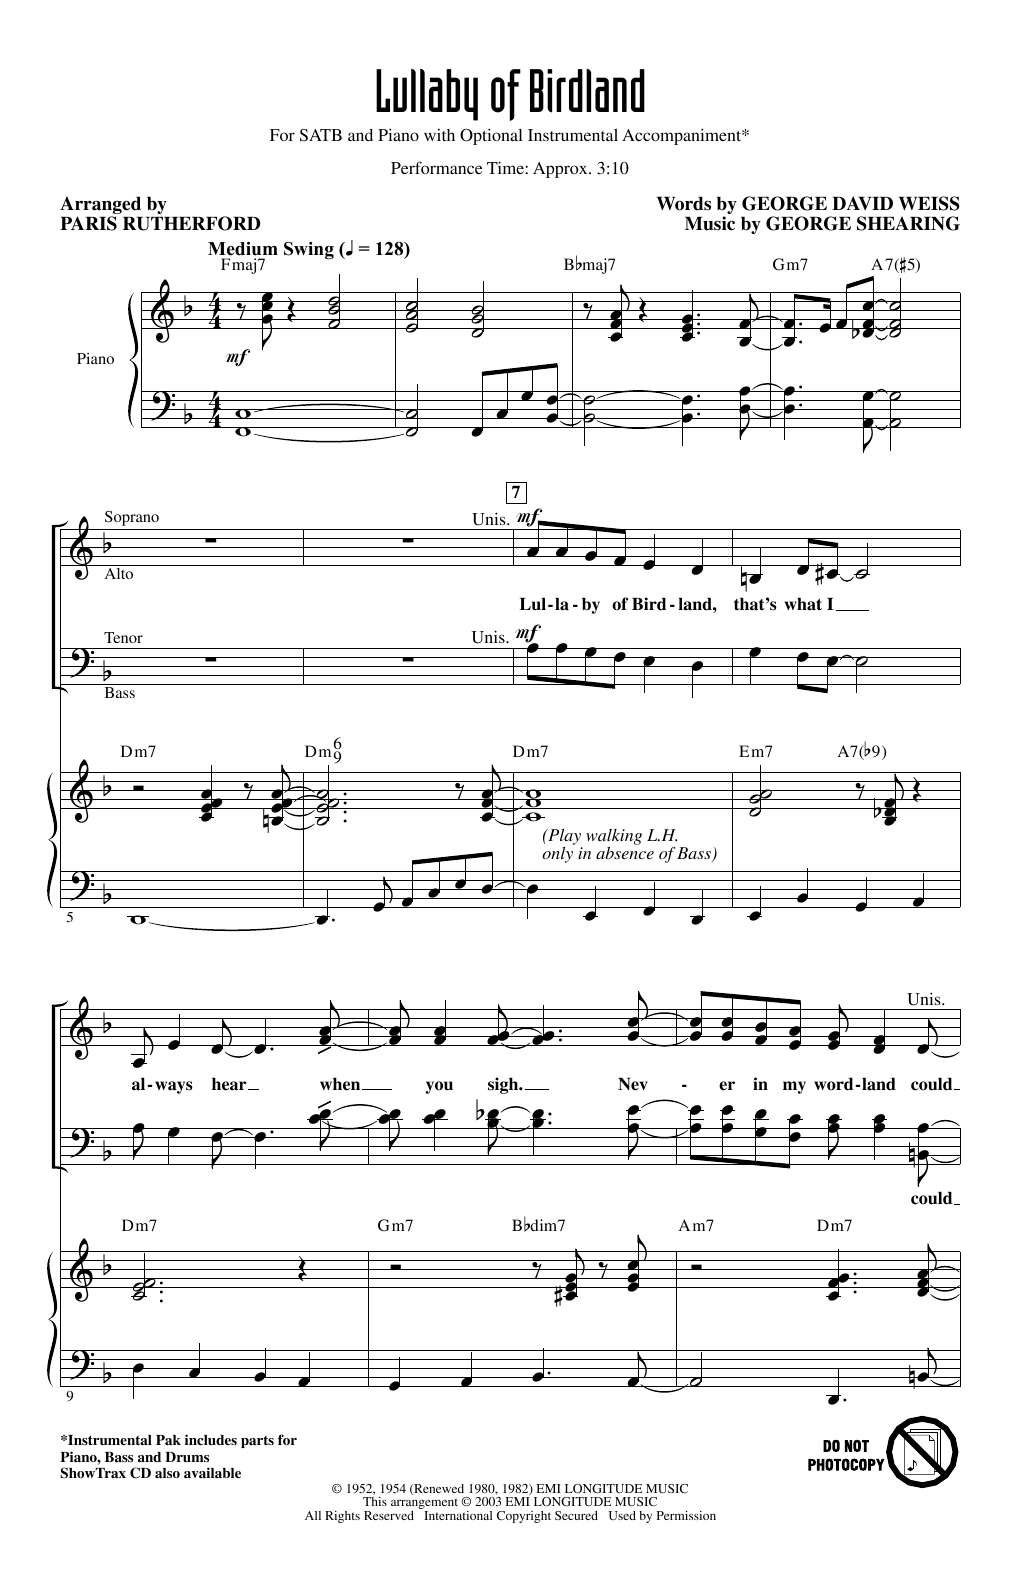 Partition chorale Lullaby Of Birdland (arr. Paris Rutherford) de George David Weiss and George Shearing - SATB